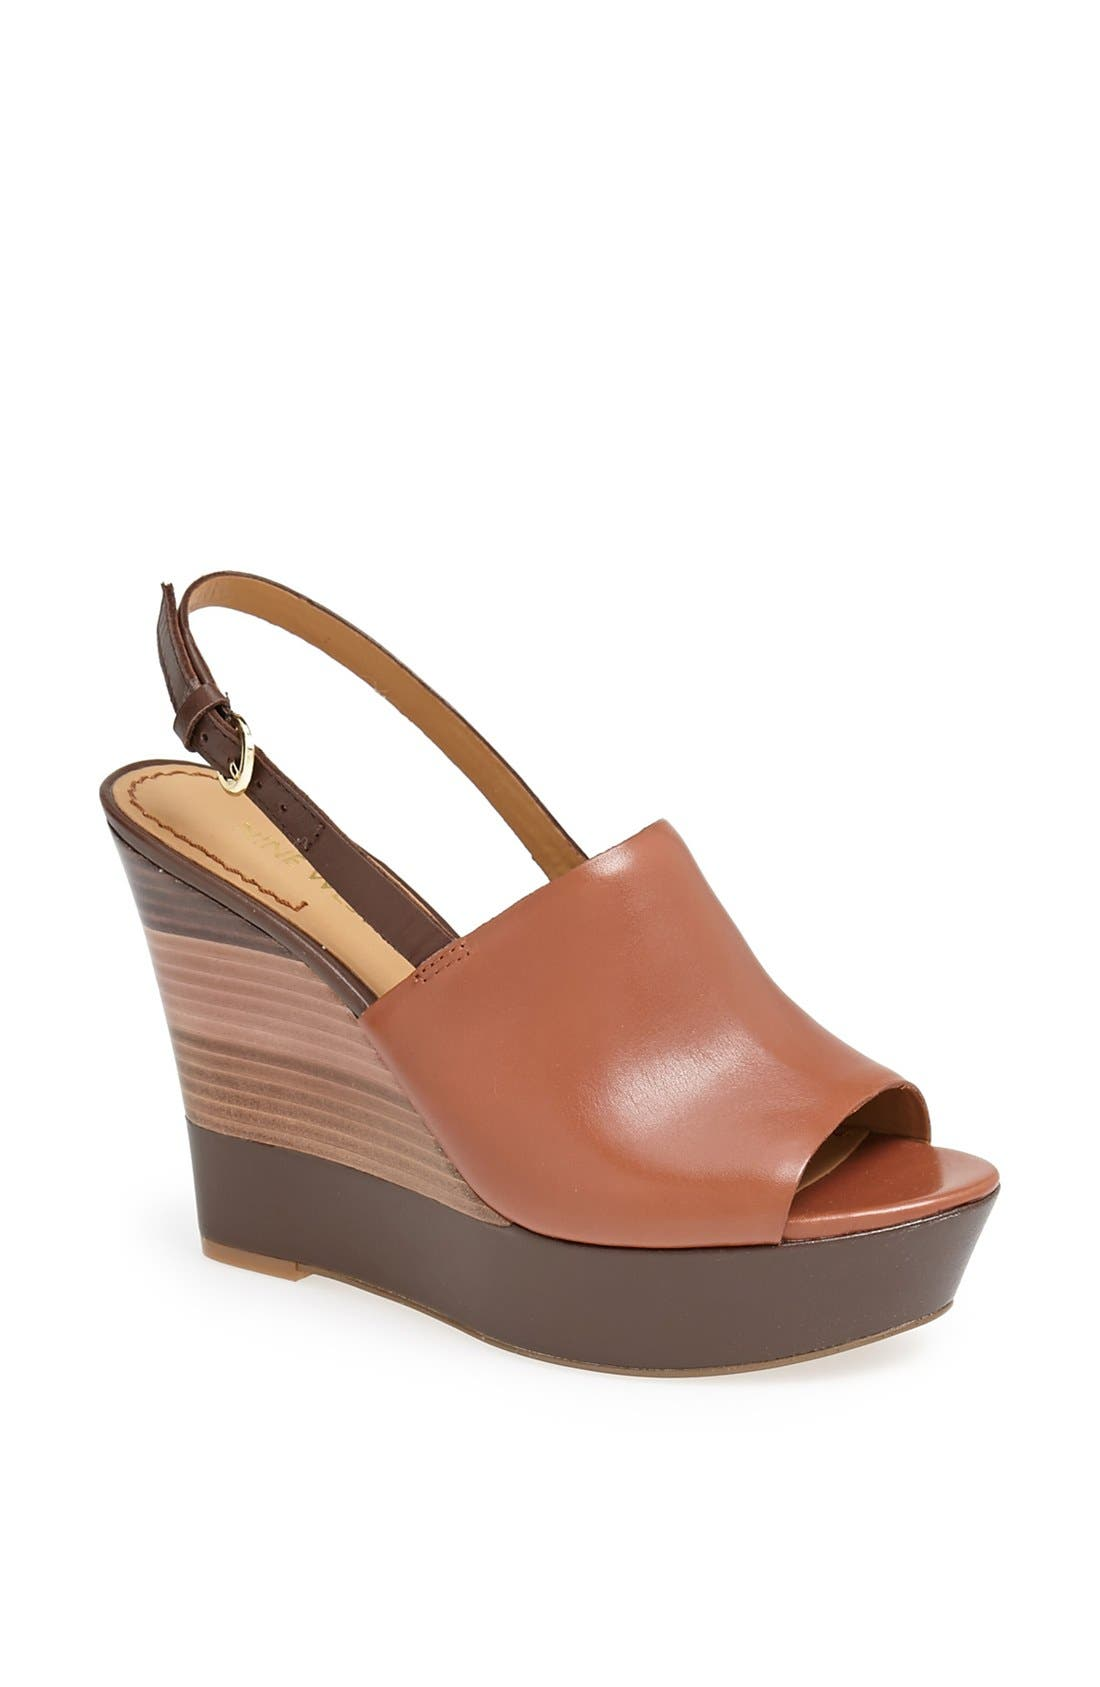 Alternate Image 1 Selected - Nine West 'Jayce' Sandal